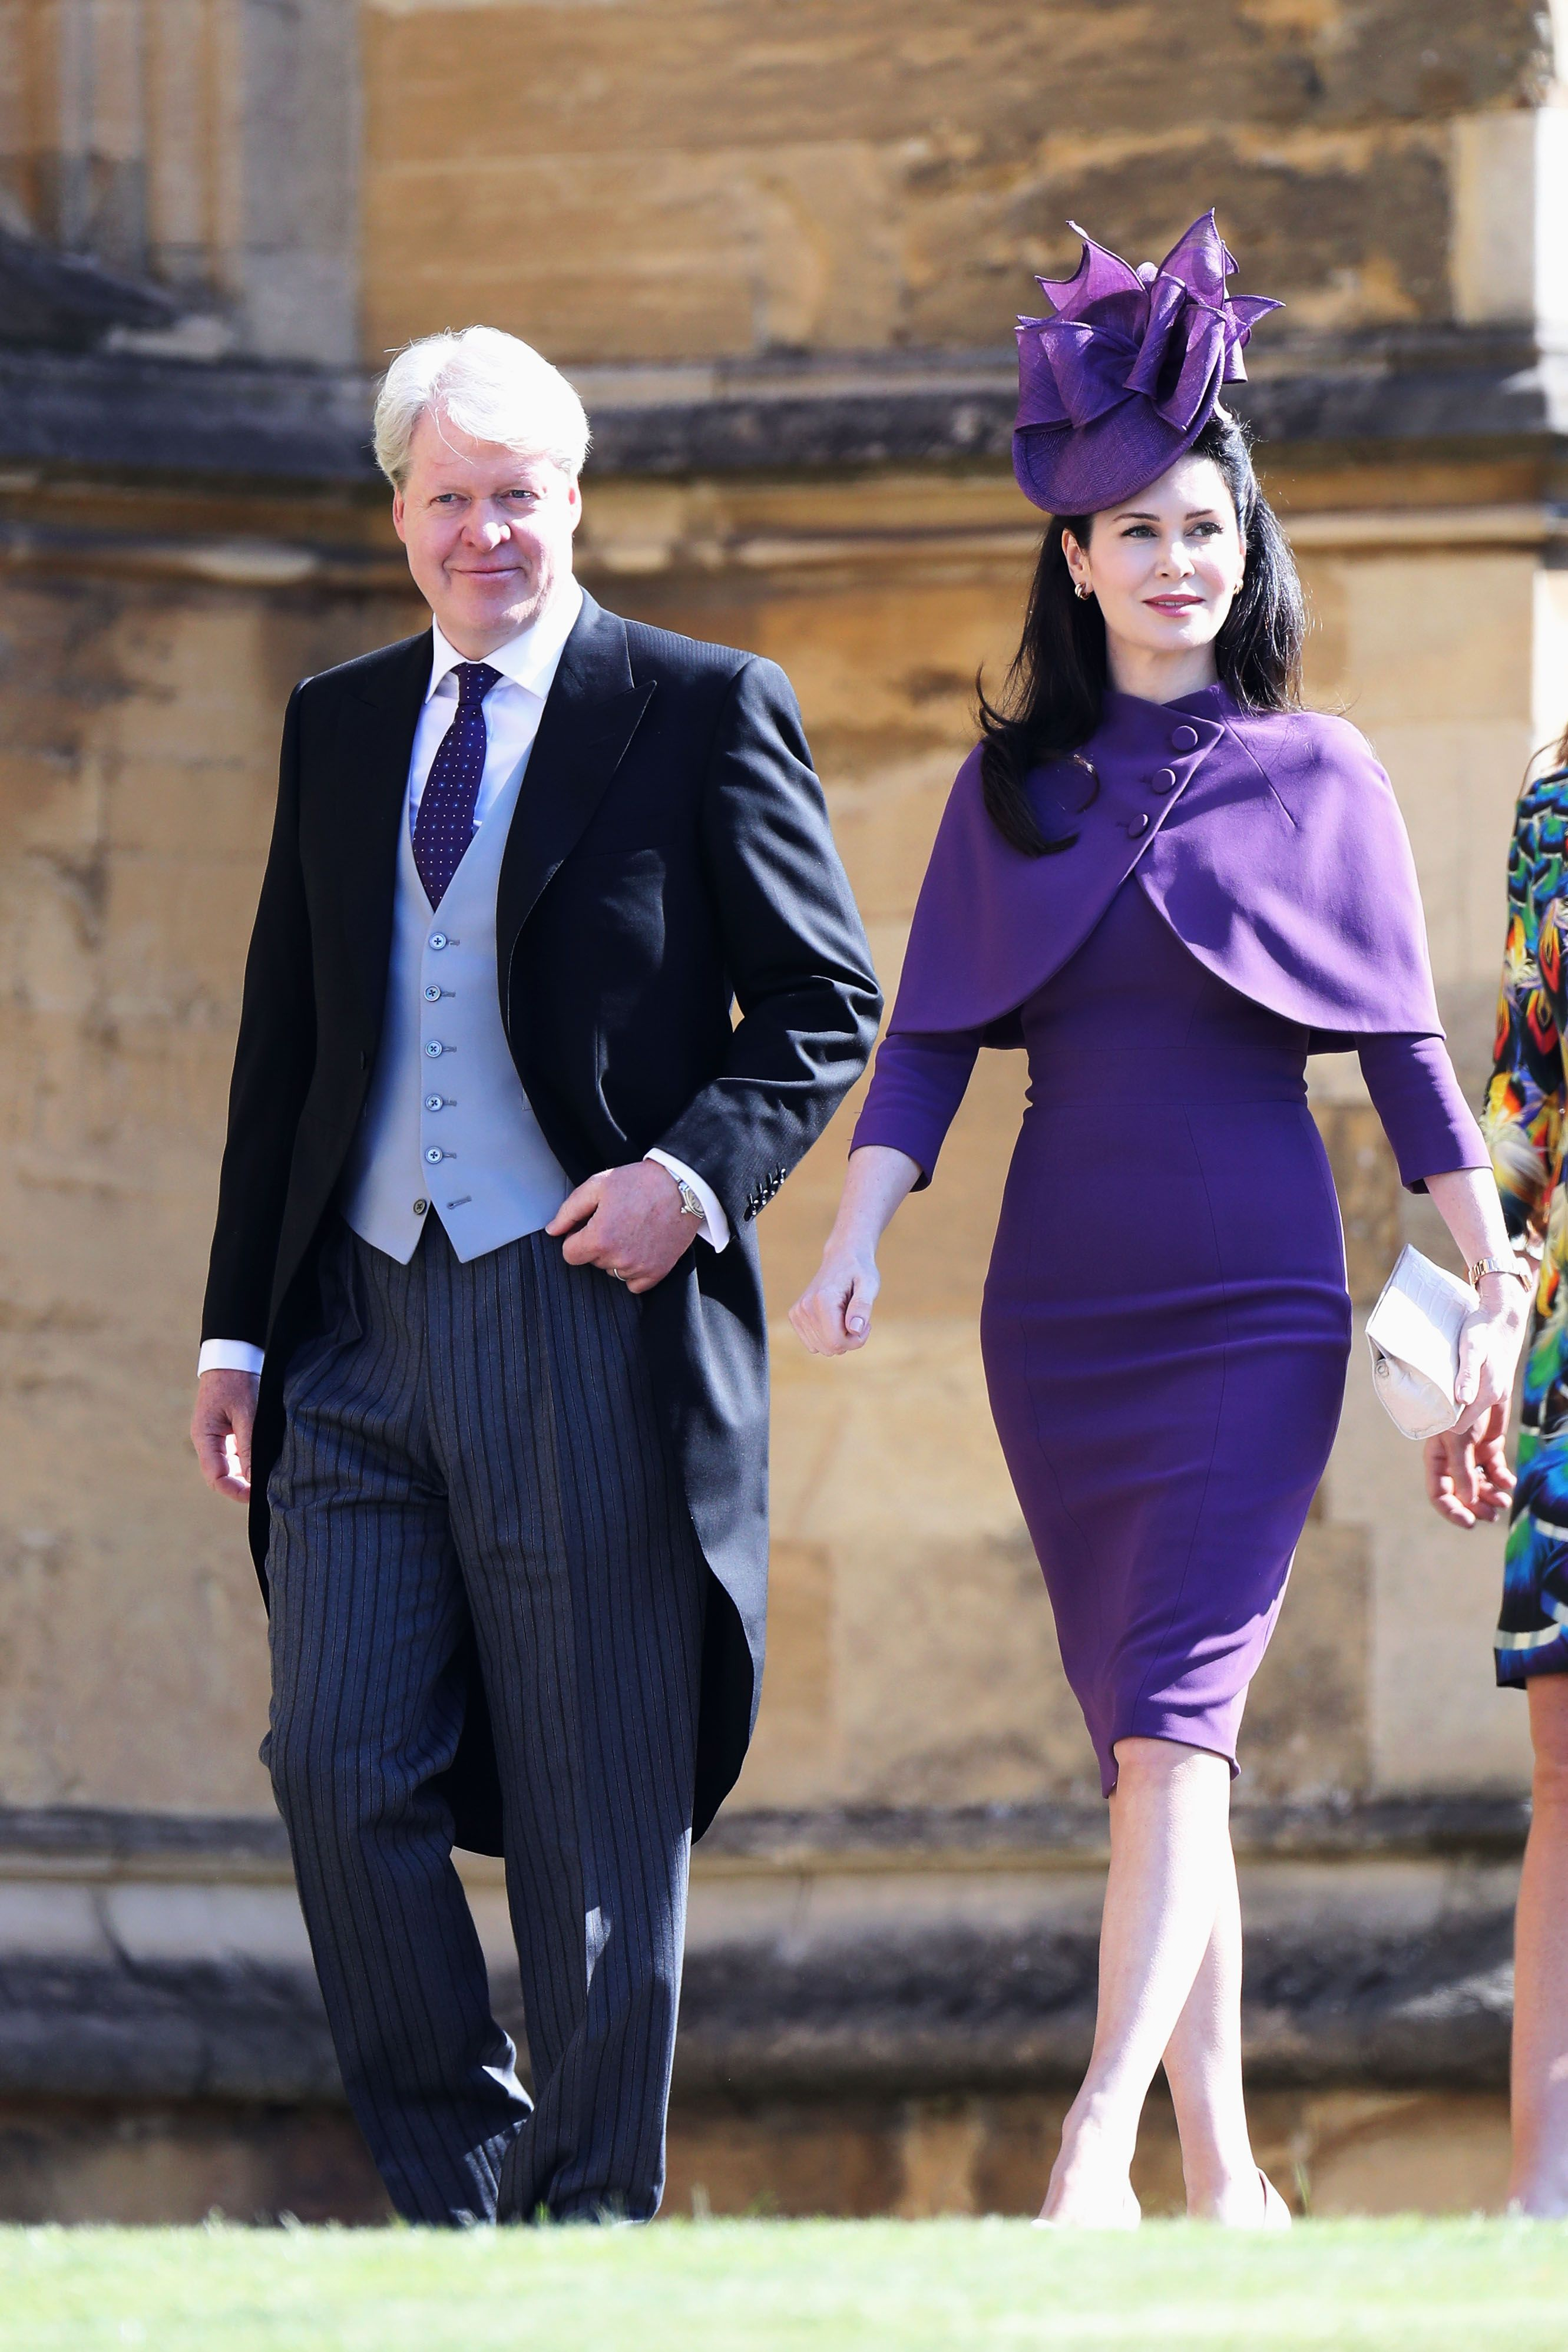 meghan and harry wedding guest outfits off 70 buy nova betel contabilidade